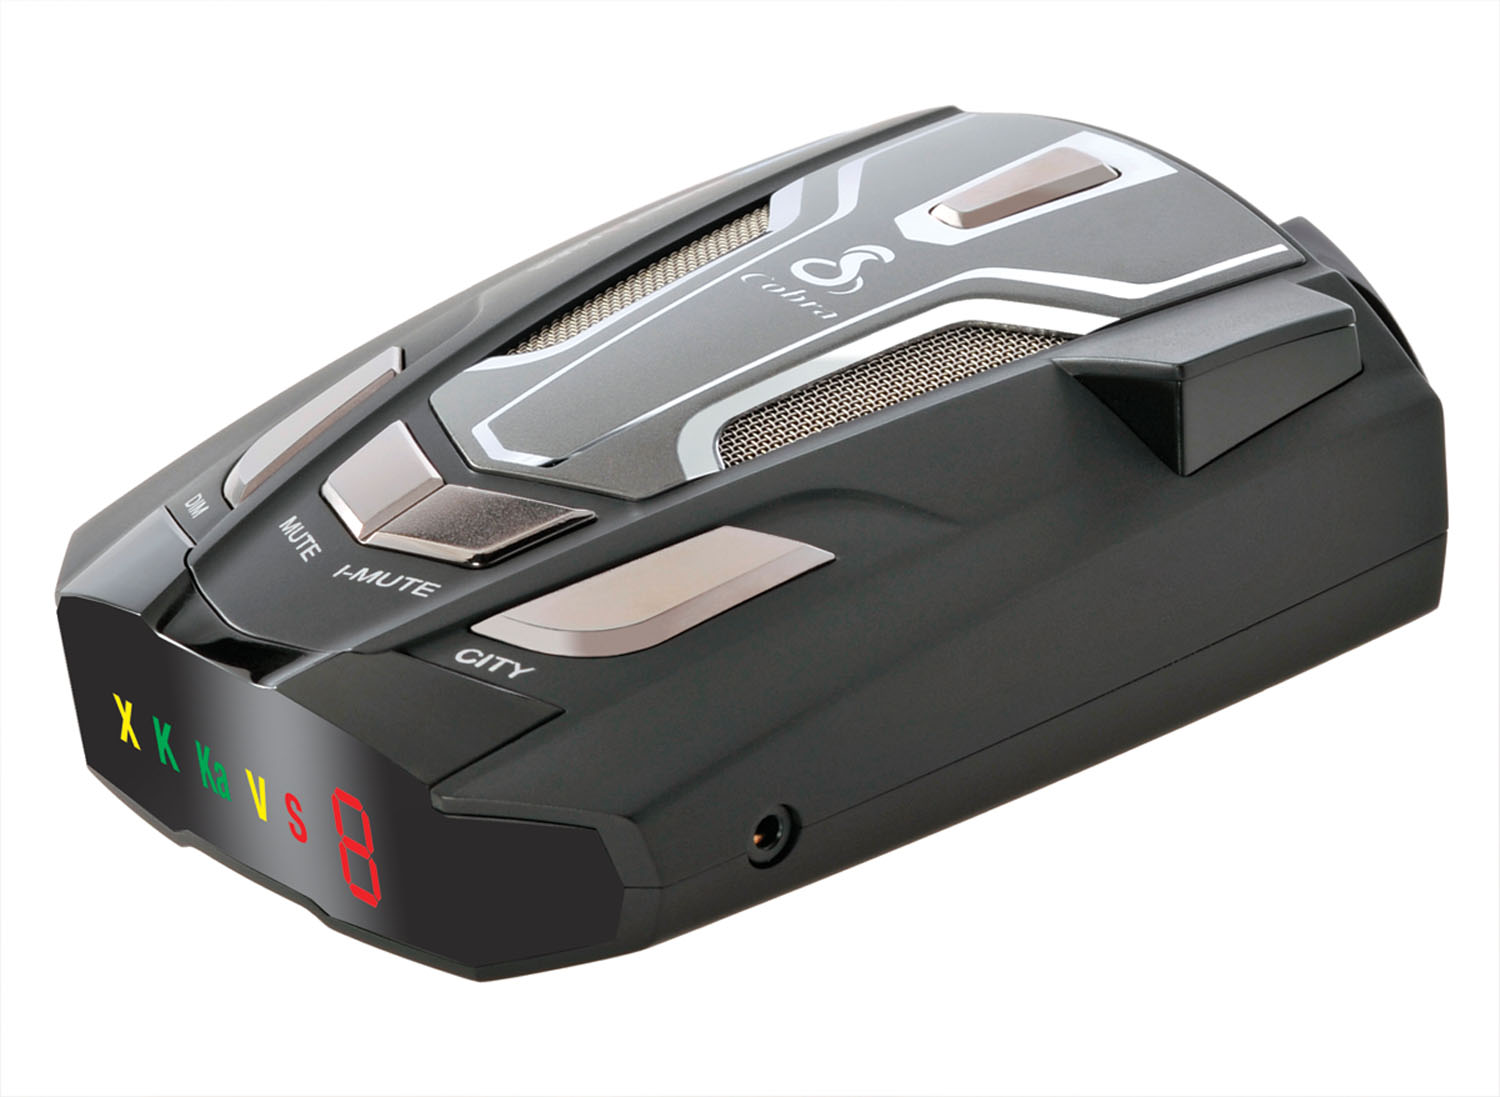 COBRA - 14 BAND ULTRA-HIGH PERFORMANCE RADAR/LASER DETECTOR WITH ULTRA BRIGHT DATA DISPAY & VOICE/TONE ALERT, VG2/SPECTRE, SAFET